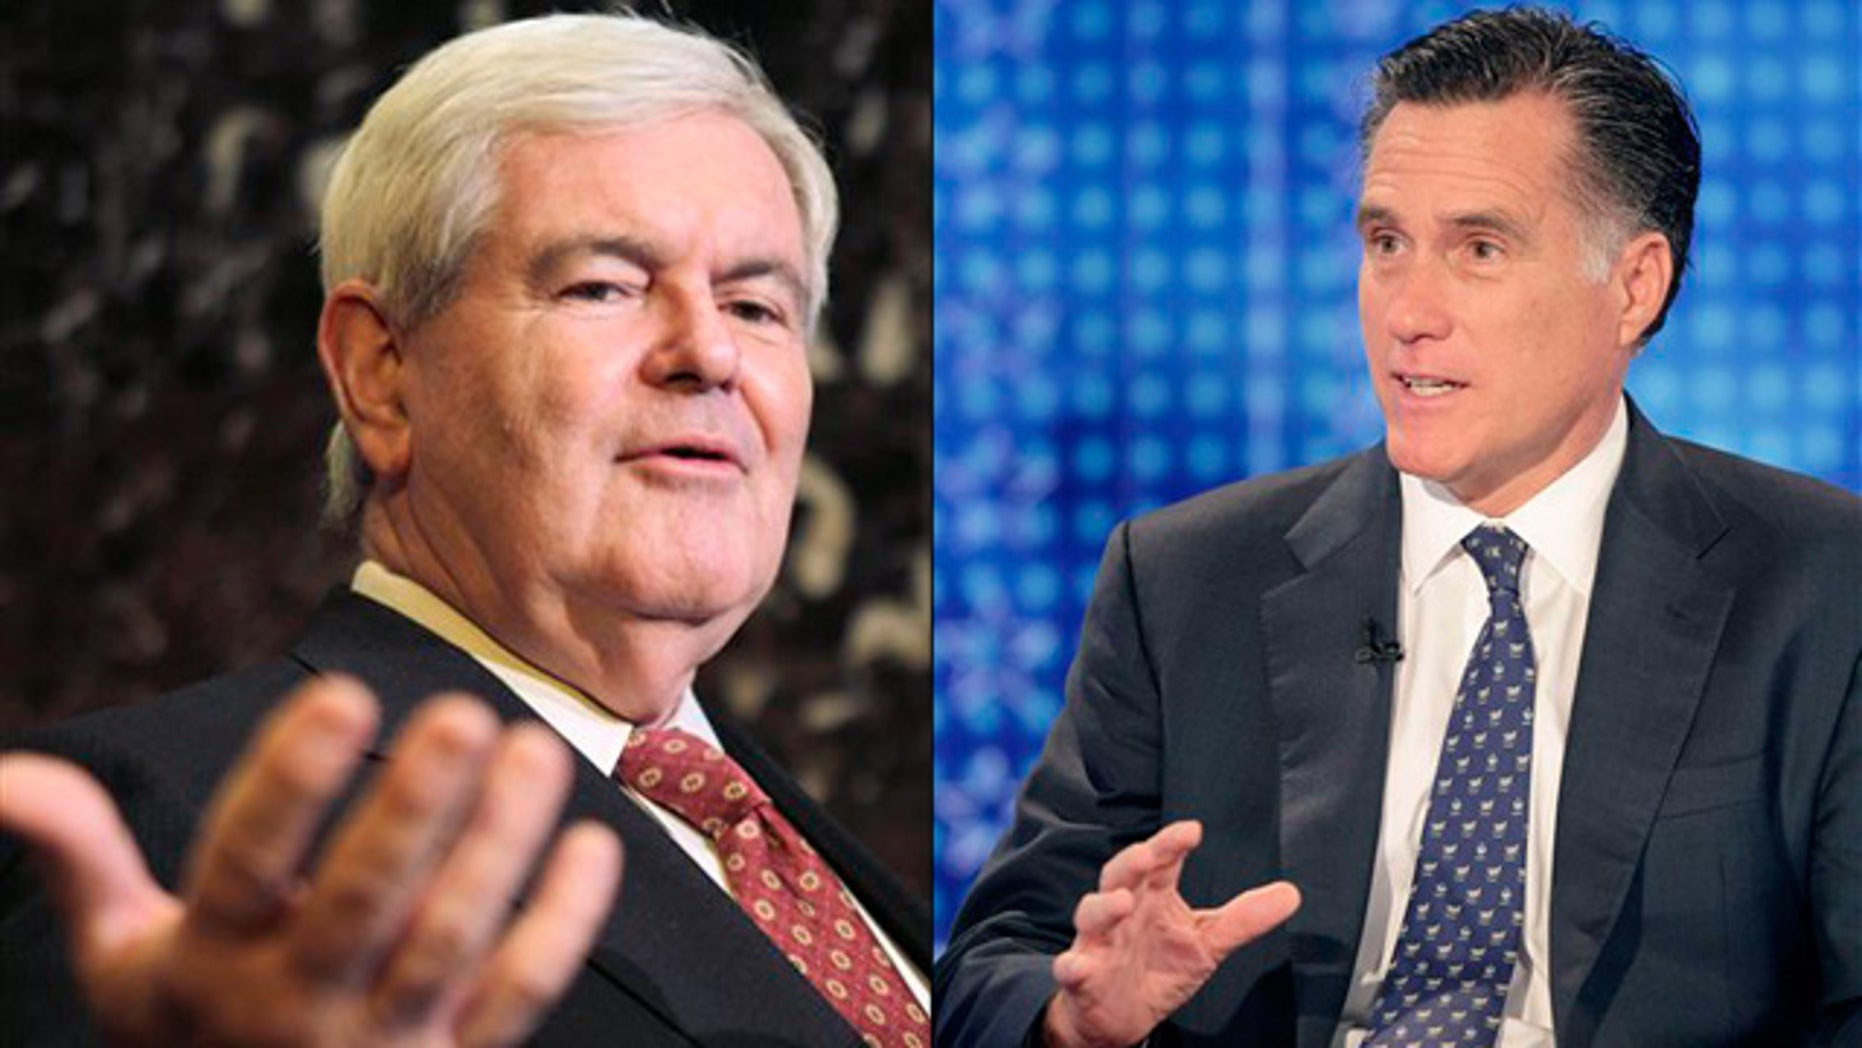 Shown here are former House Speaker Newt Gingrich, left, and former Massachusetts Gov. Mitt Romney.